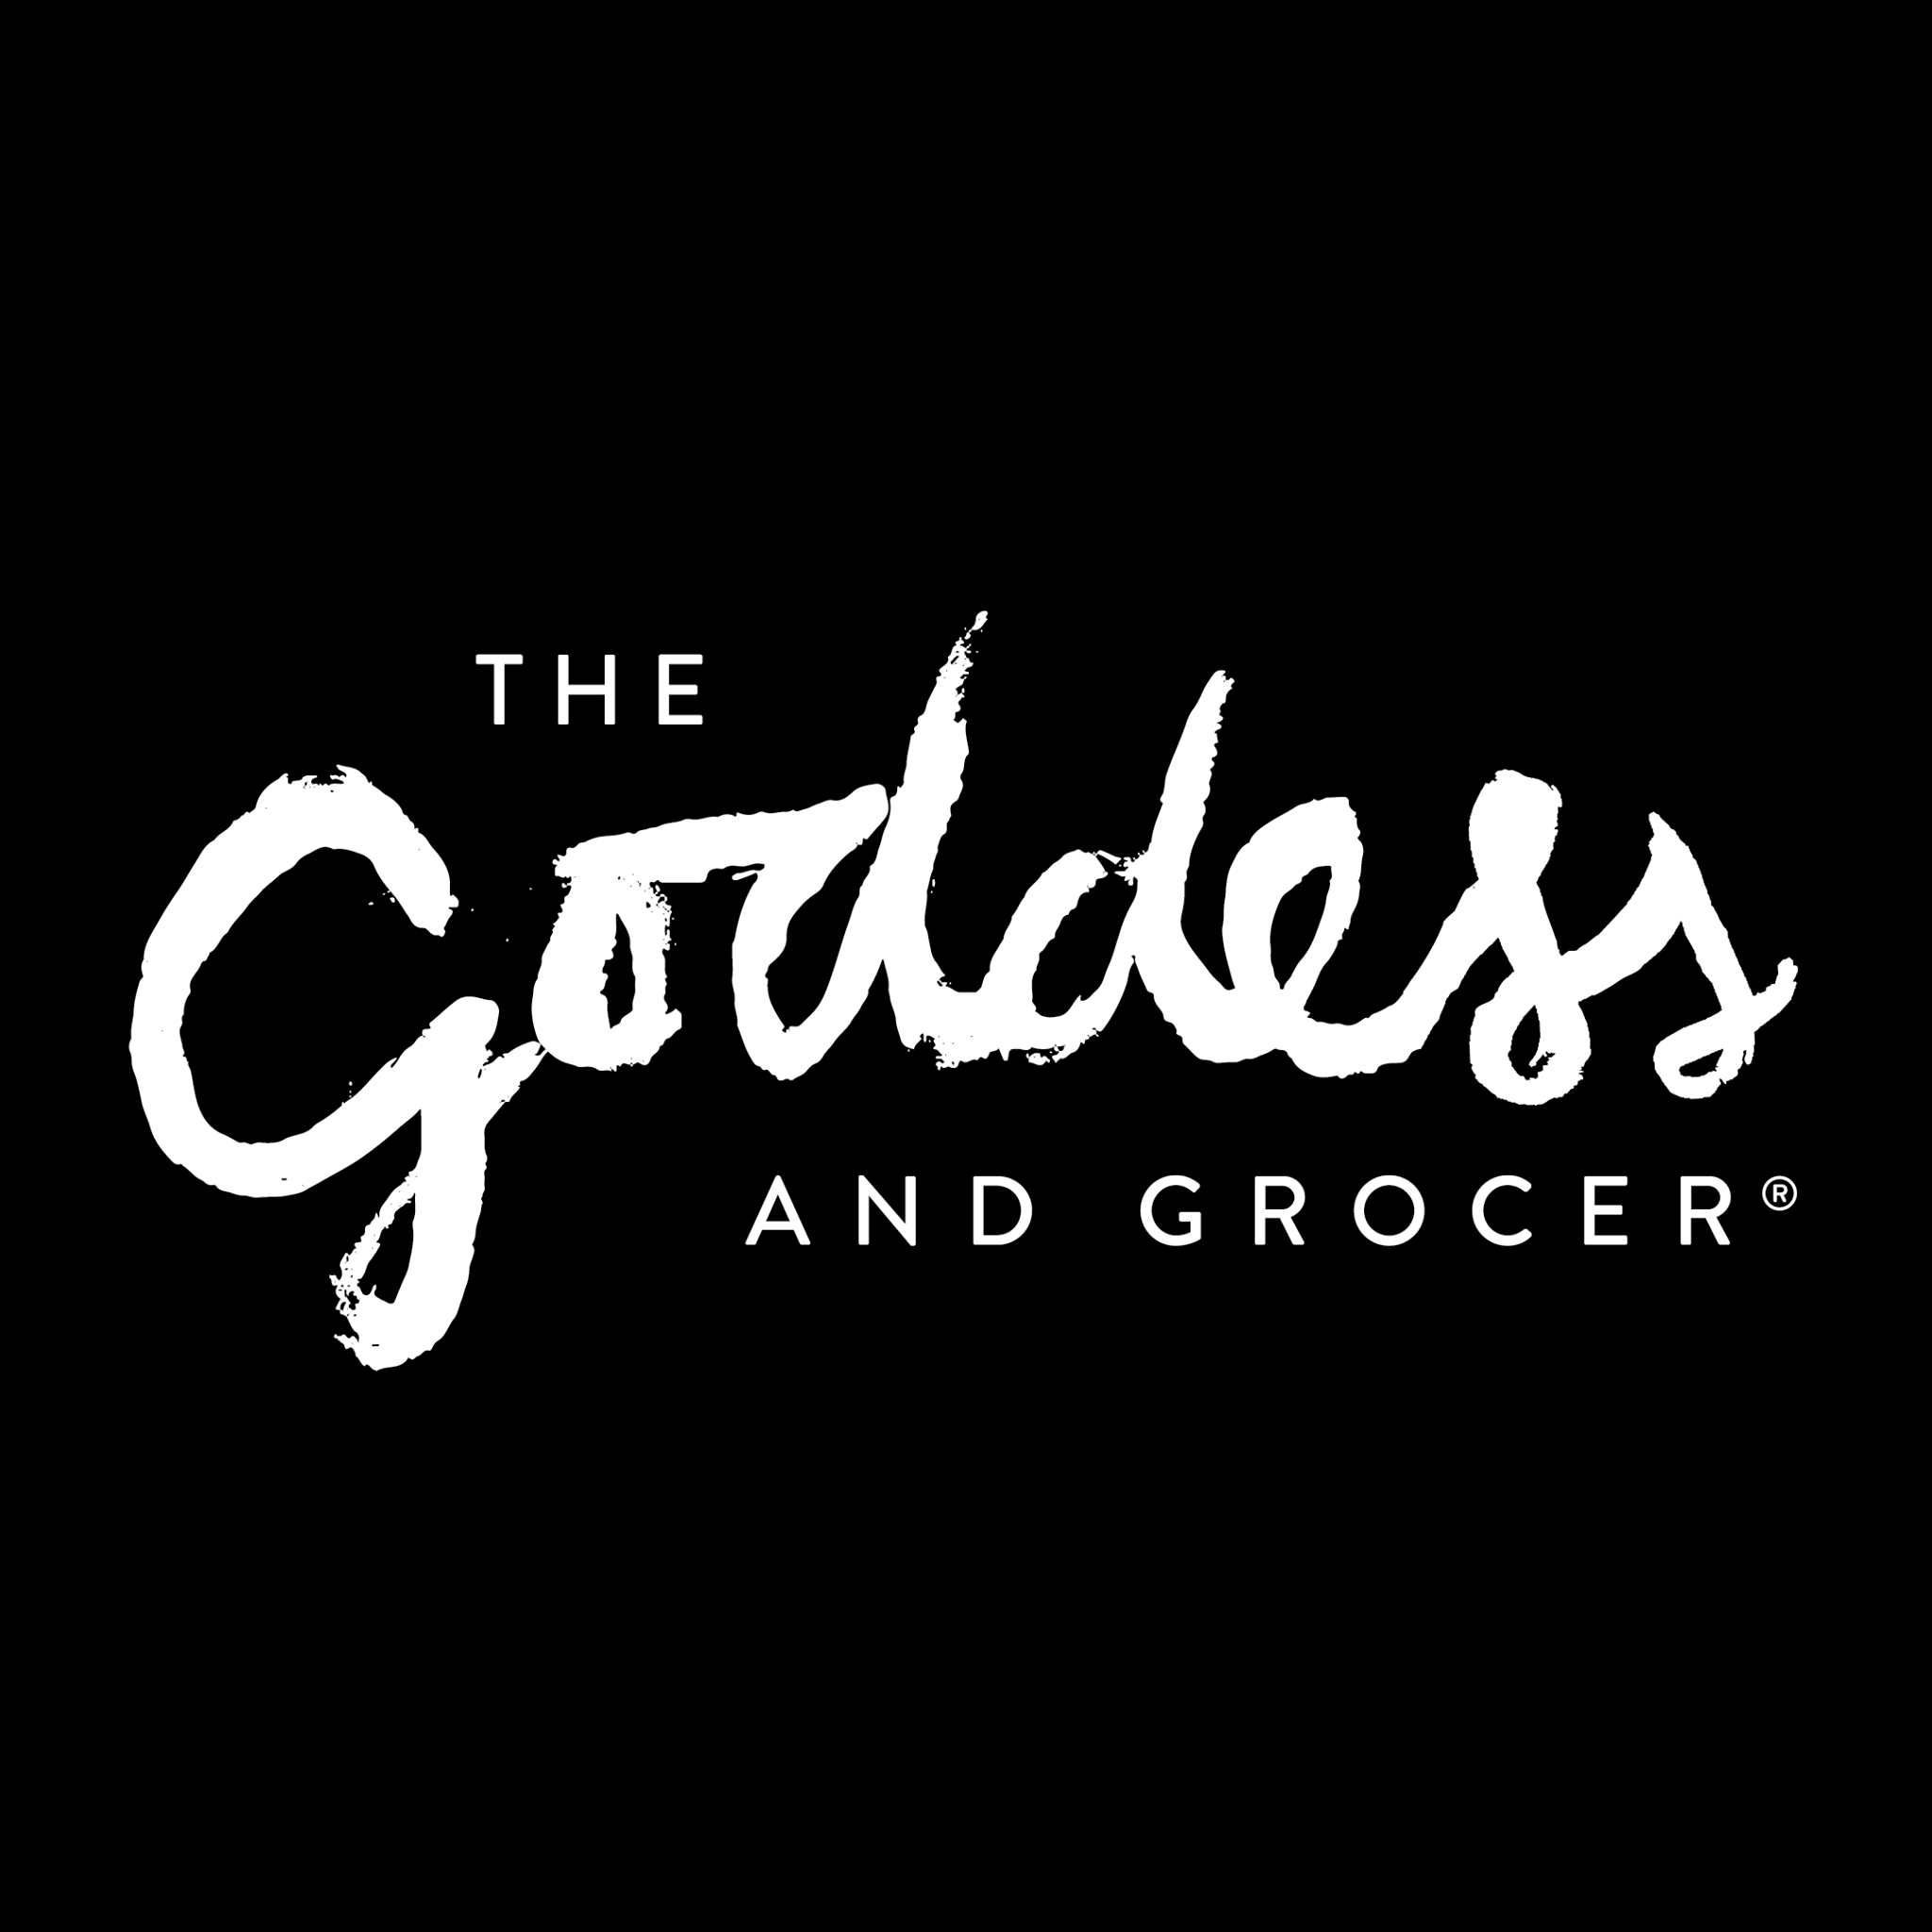 The Goddess and Grocer 1649 N Damen Ave